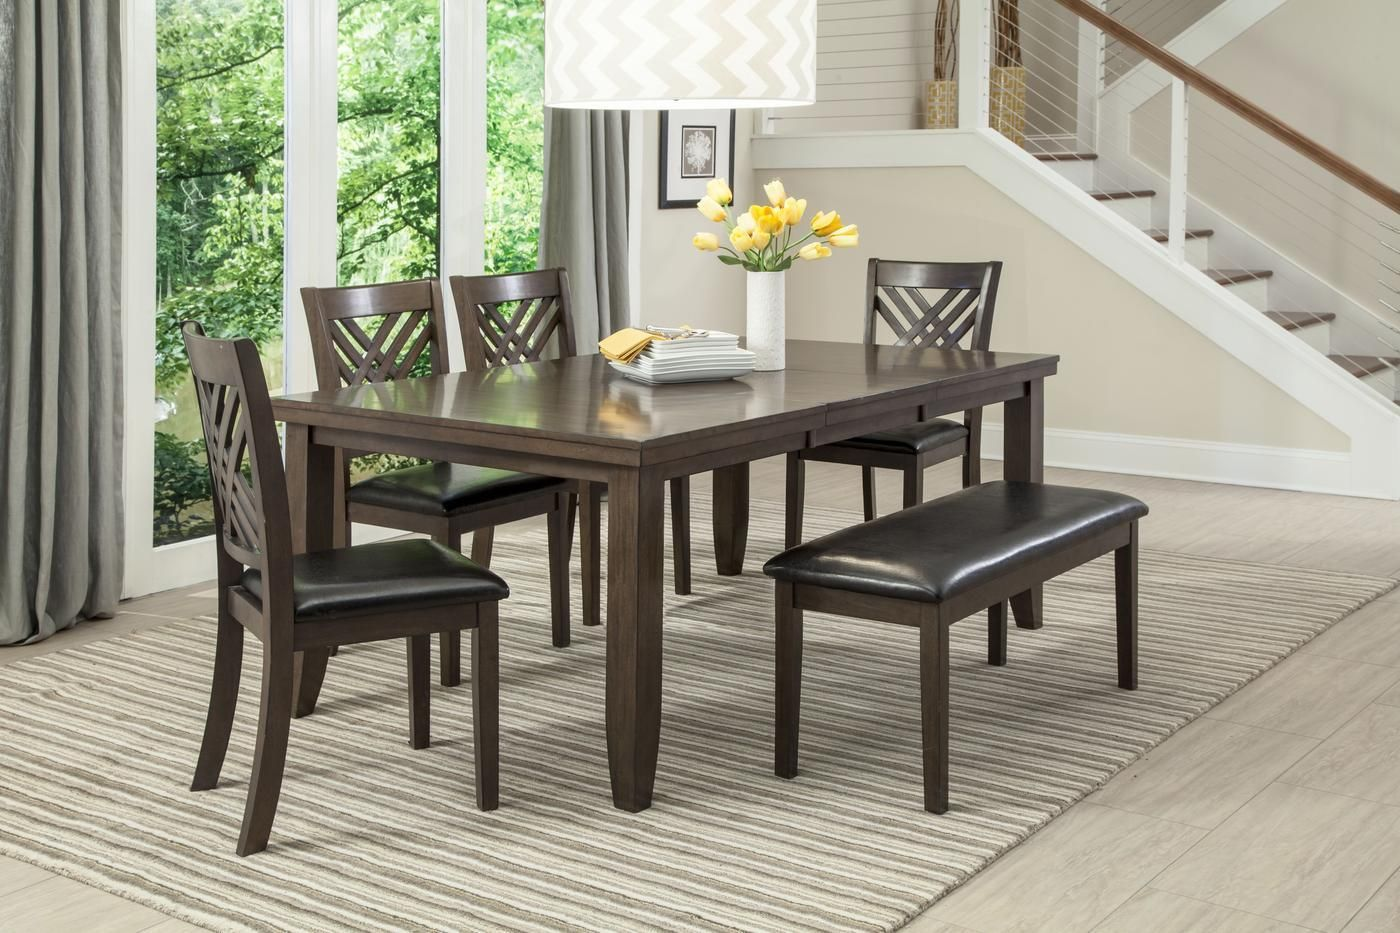 Lebaron Espresso 6 Piece Dinette Table 4 Chairs And Bench Made